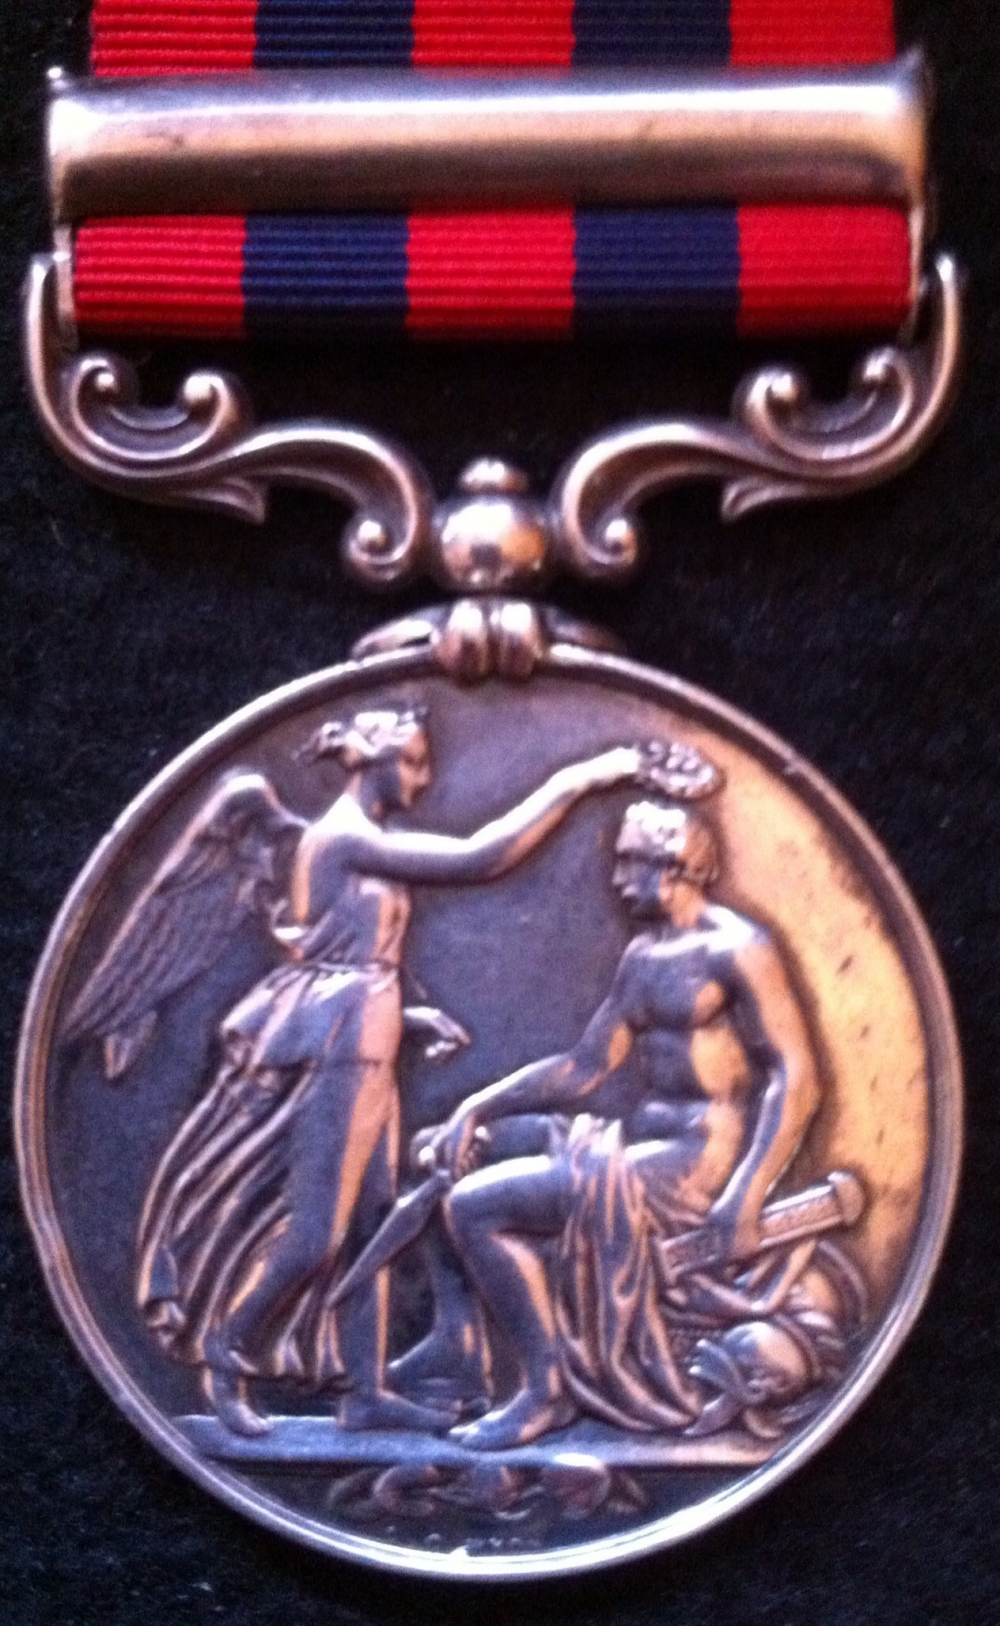 The Indian General Service Medal of Colonel Sebastian Moran